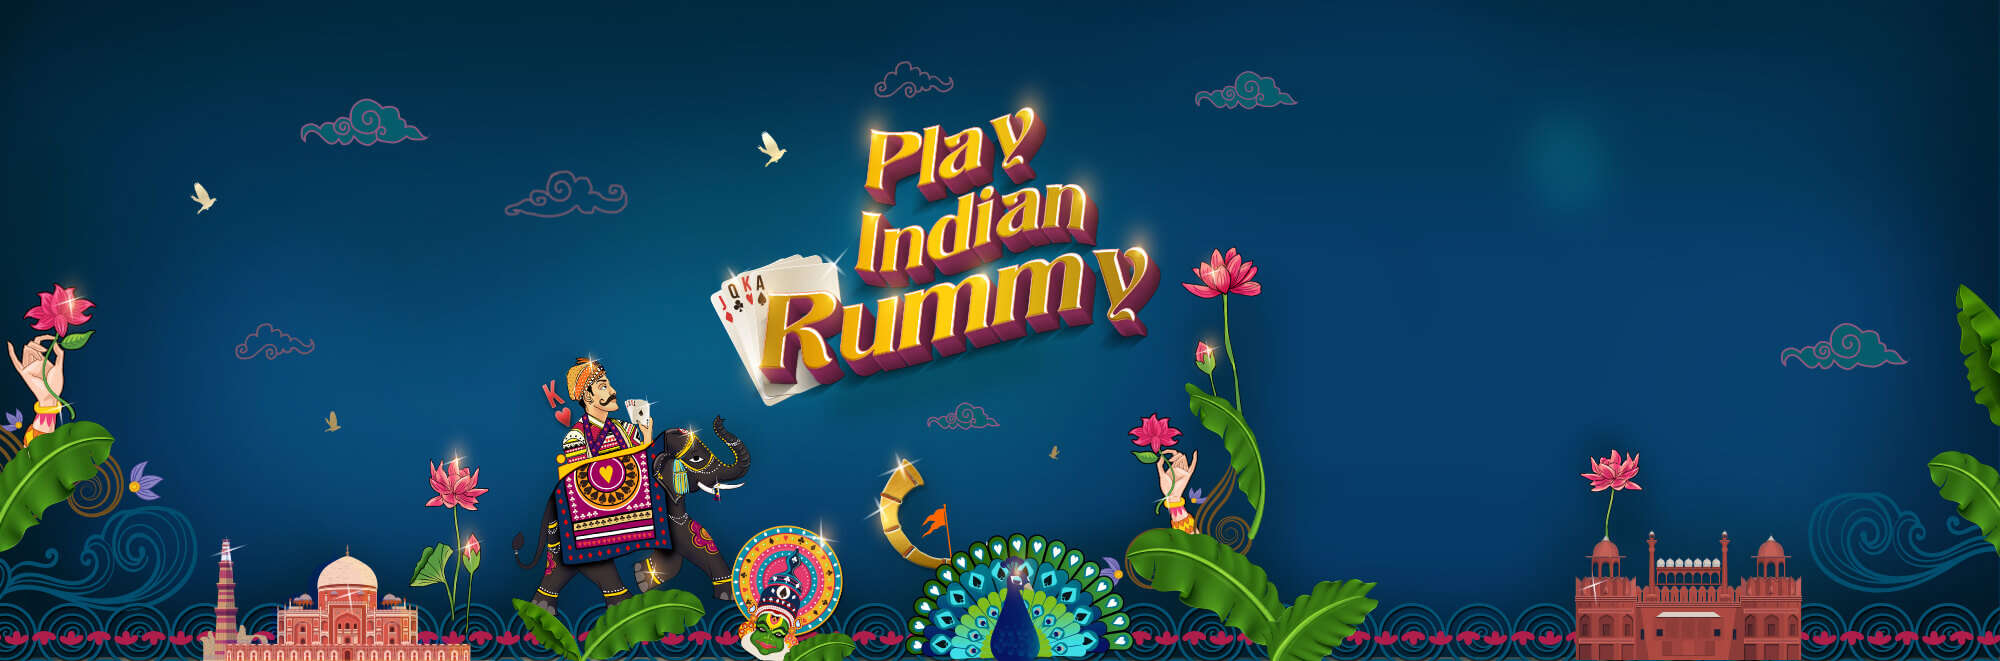 play indian rummy online